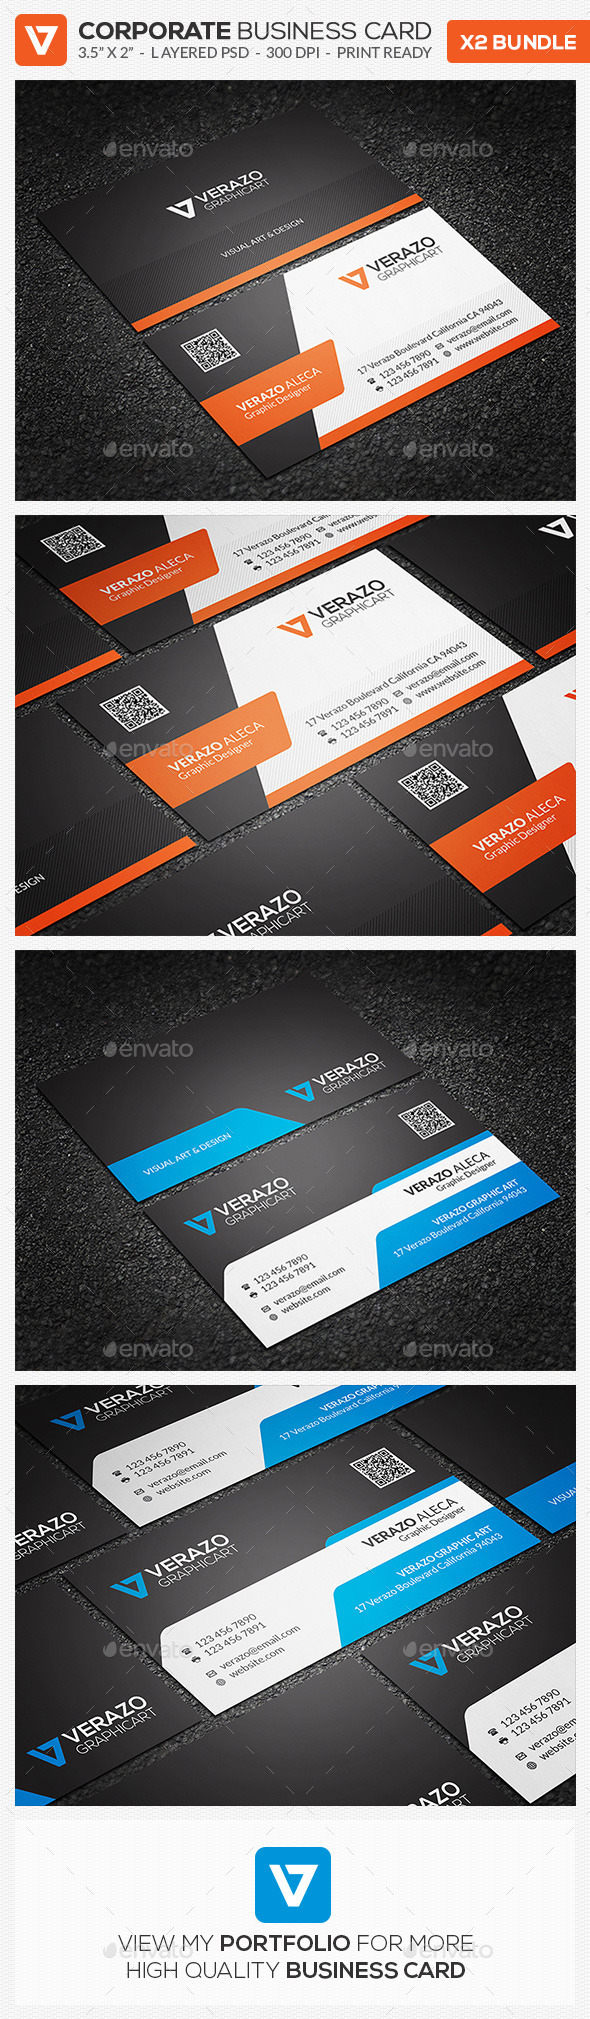 Business Card Bundle 20 - Corporate Business Cards